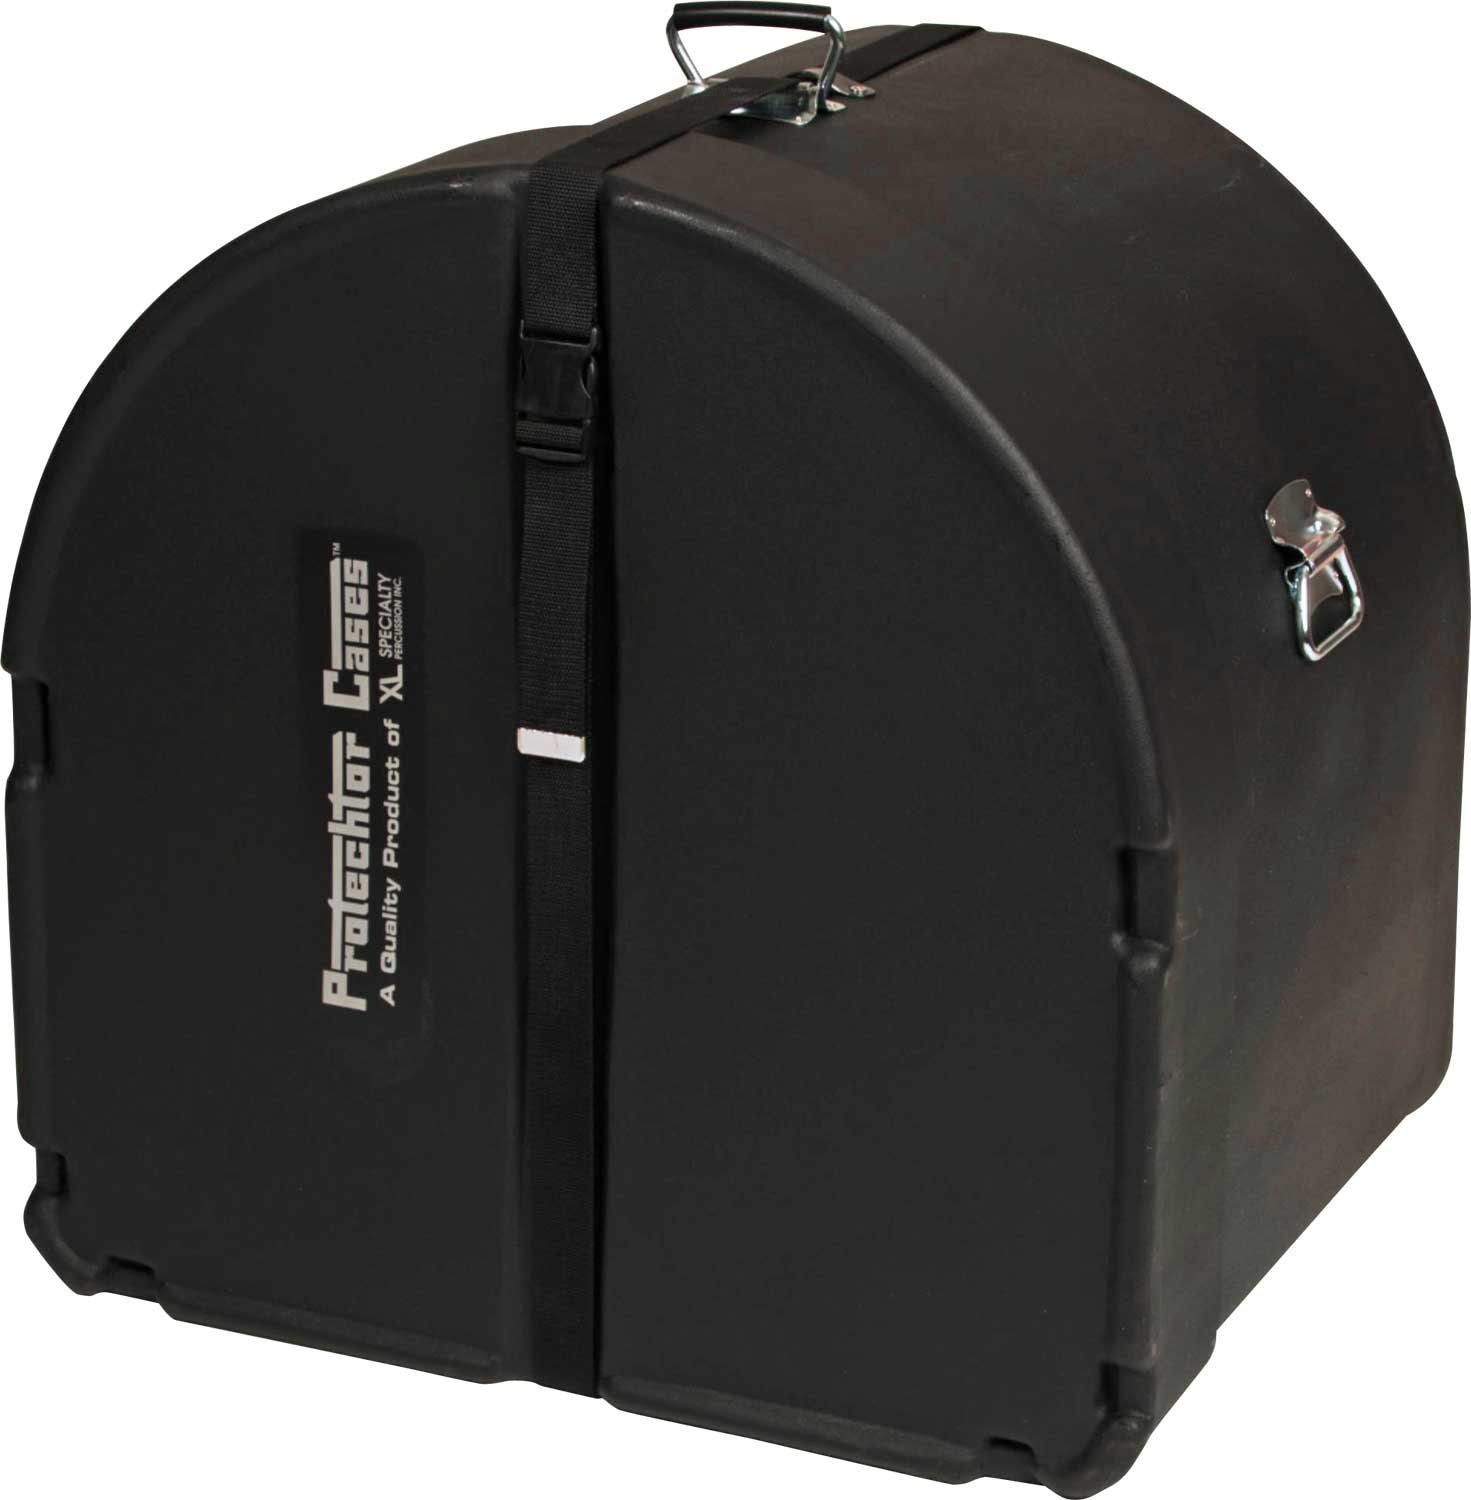 """Gator Cases GP-PC3016MBD 16""""x30"""" Classic Series Marching Bass Drum Case by Protechtor GP-PC3016MBD"""